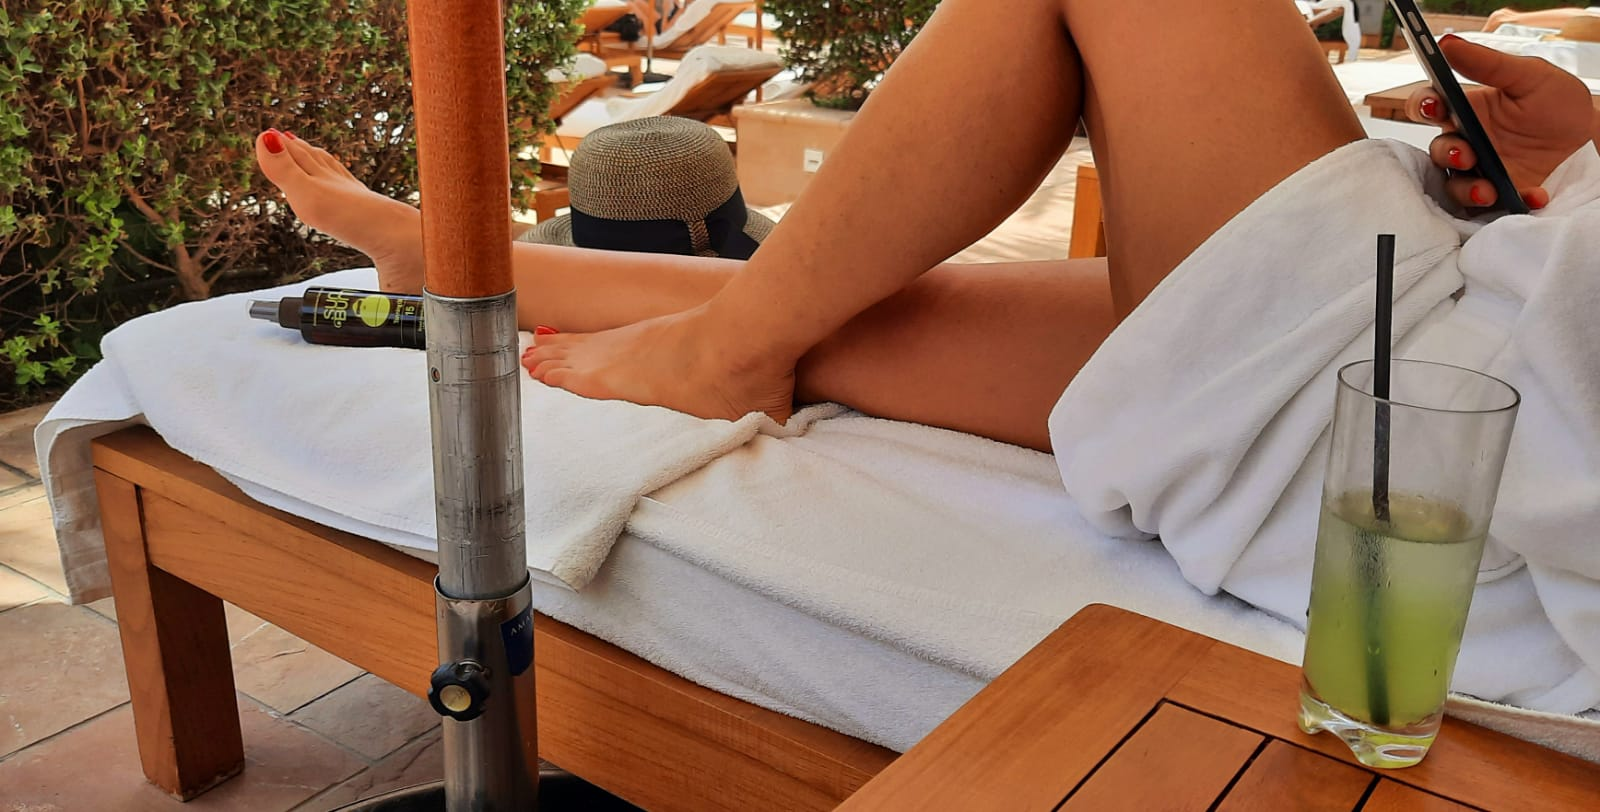 Mistress Anita is lying on a wooden sunbed which is covered with white towels, a hat and tanning oil, she is holding a smart phone and is wearing a white bathrobe showing her legs and feet with red polish, on the left of her is a wooden table with a glass with a green beverage with a black straw.